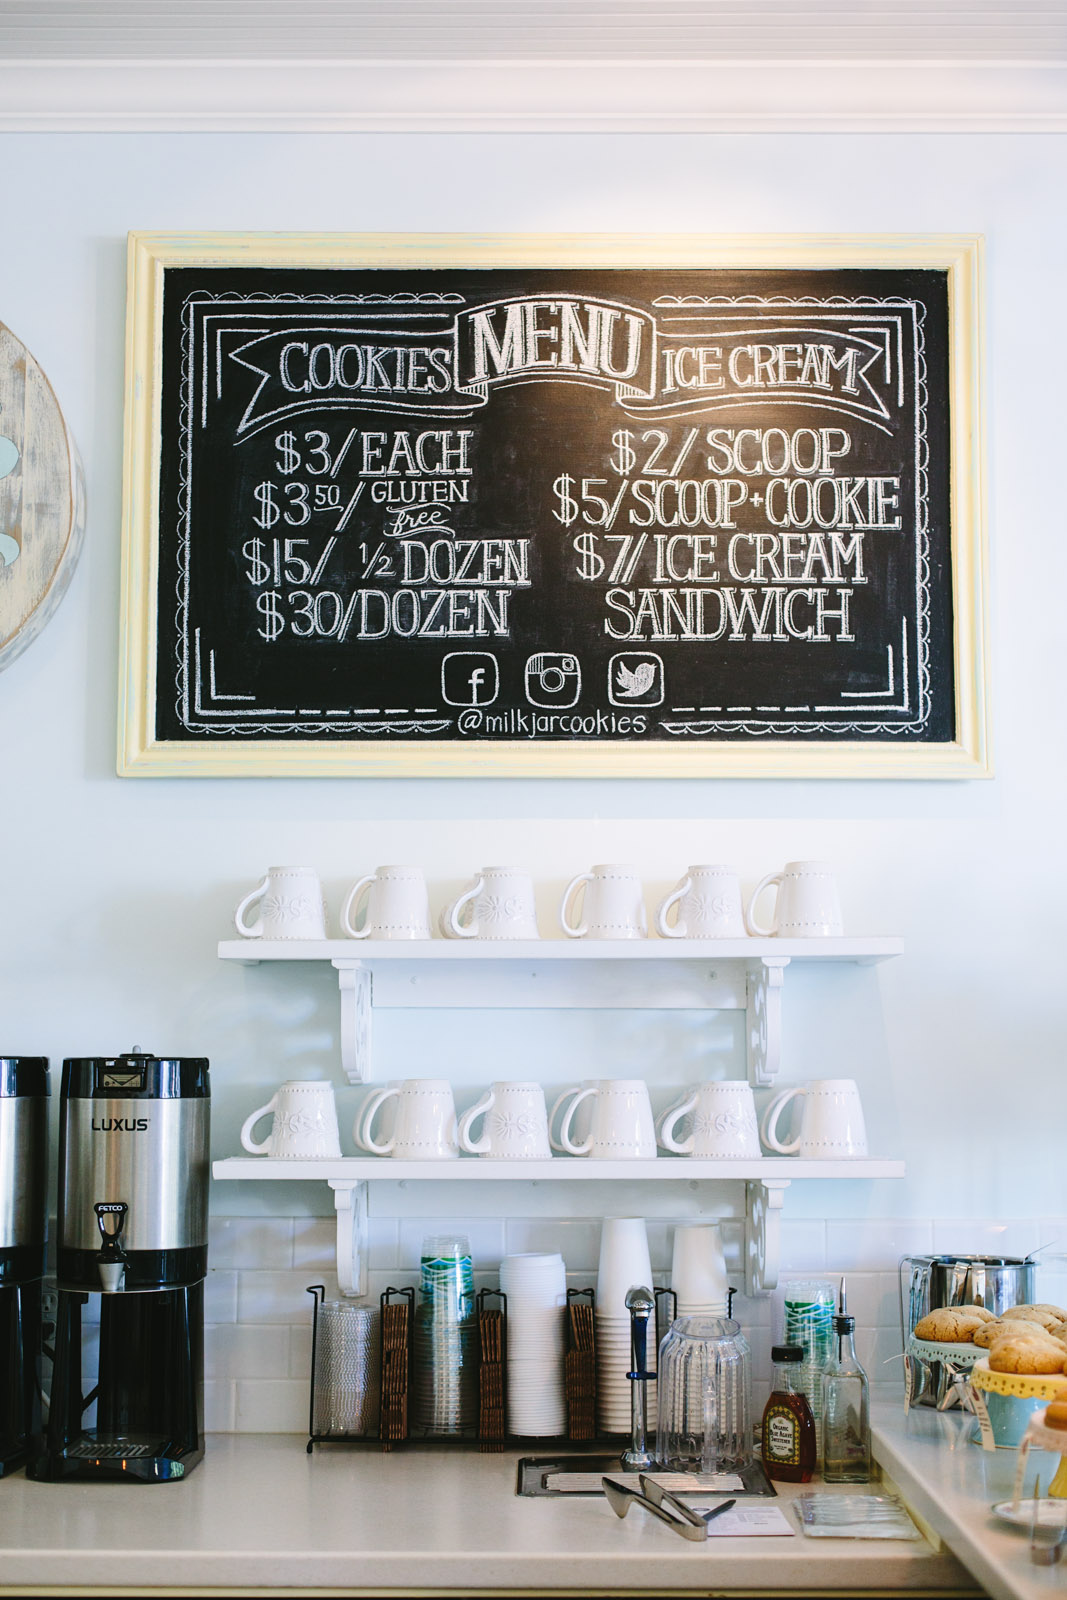 Photos by Mary Costa for Garlic My Soul | Milk Jar Cookies Los Angeles | 003